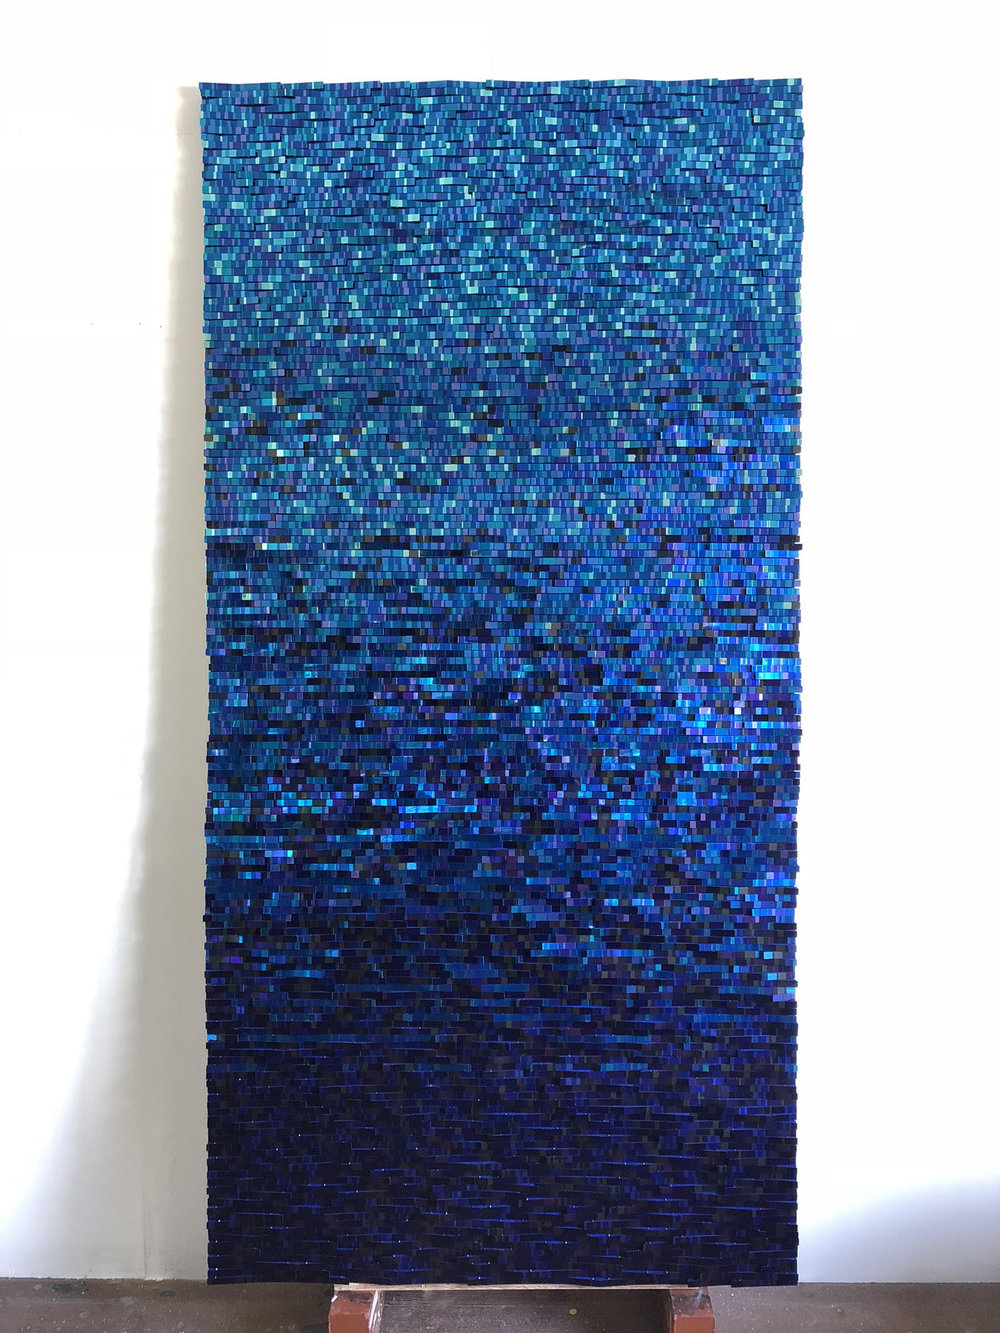 Blue Reflection No. 1801  Mixed Media on Wood Panel 72 x 36 inches